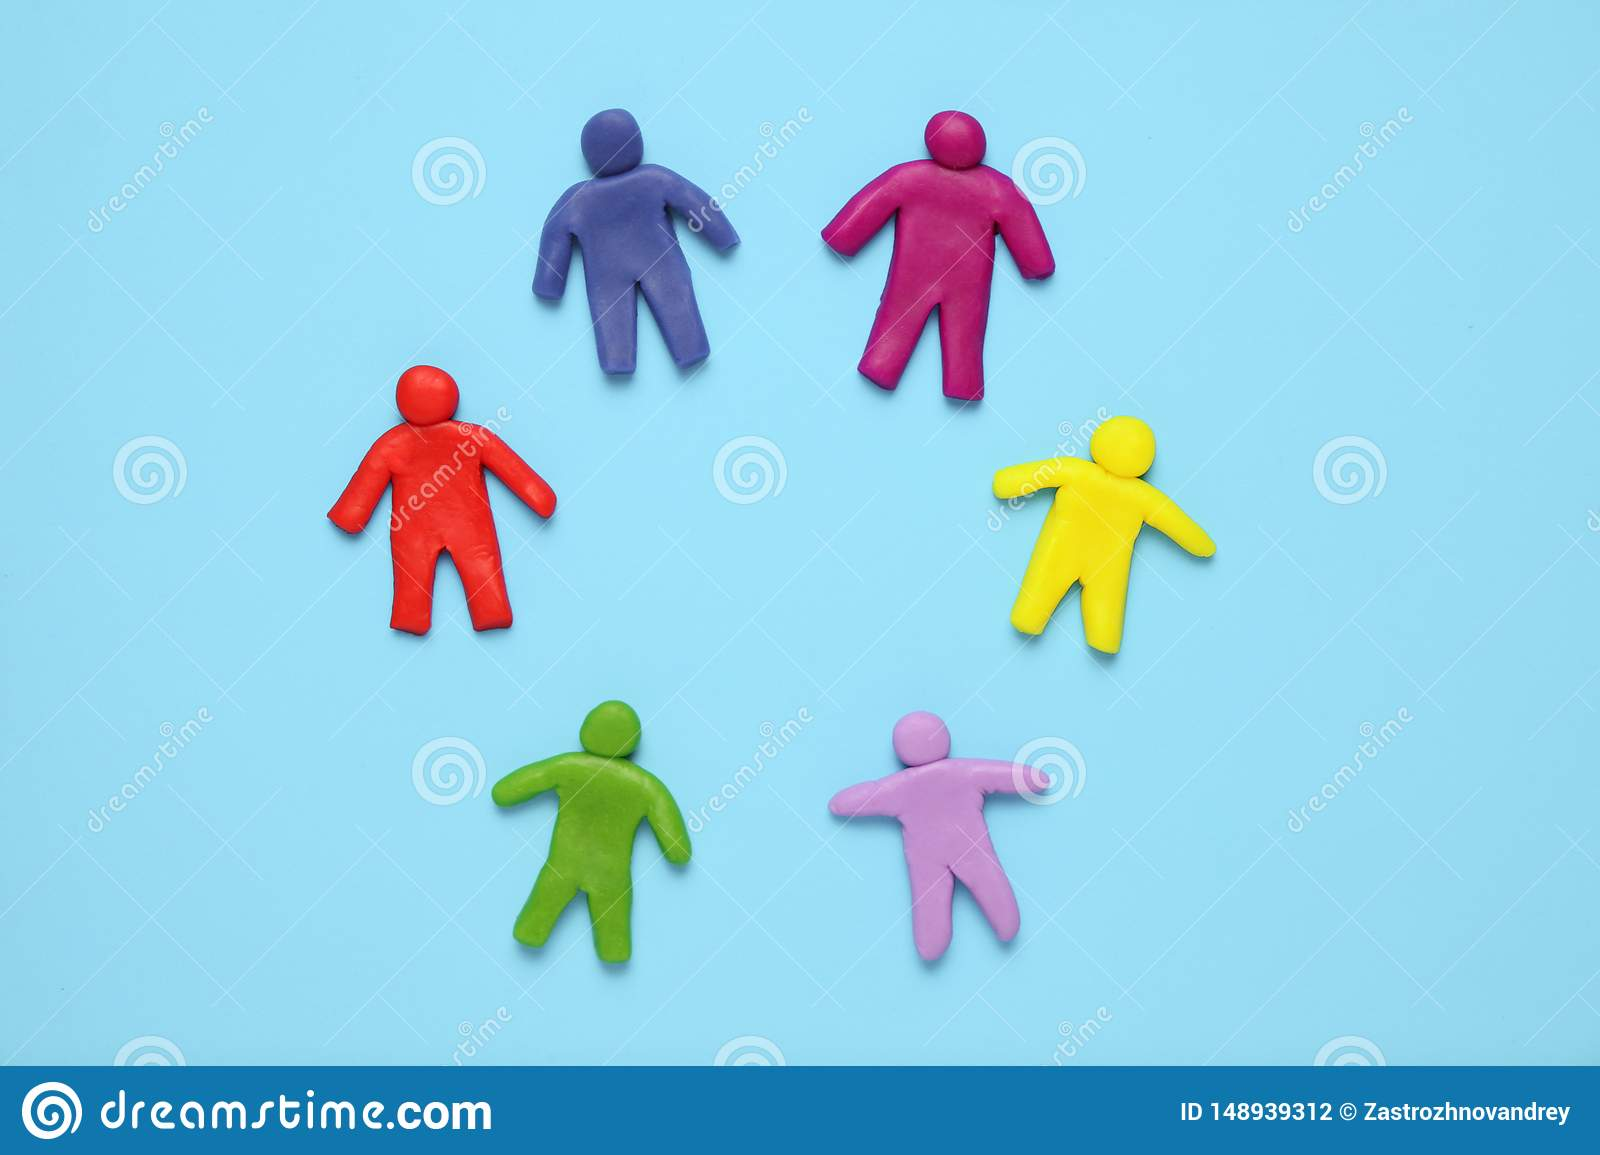 Multi сolored plasticine figures of people. Racial diversity and equality of people in world